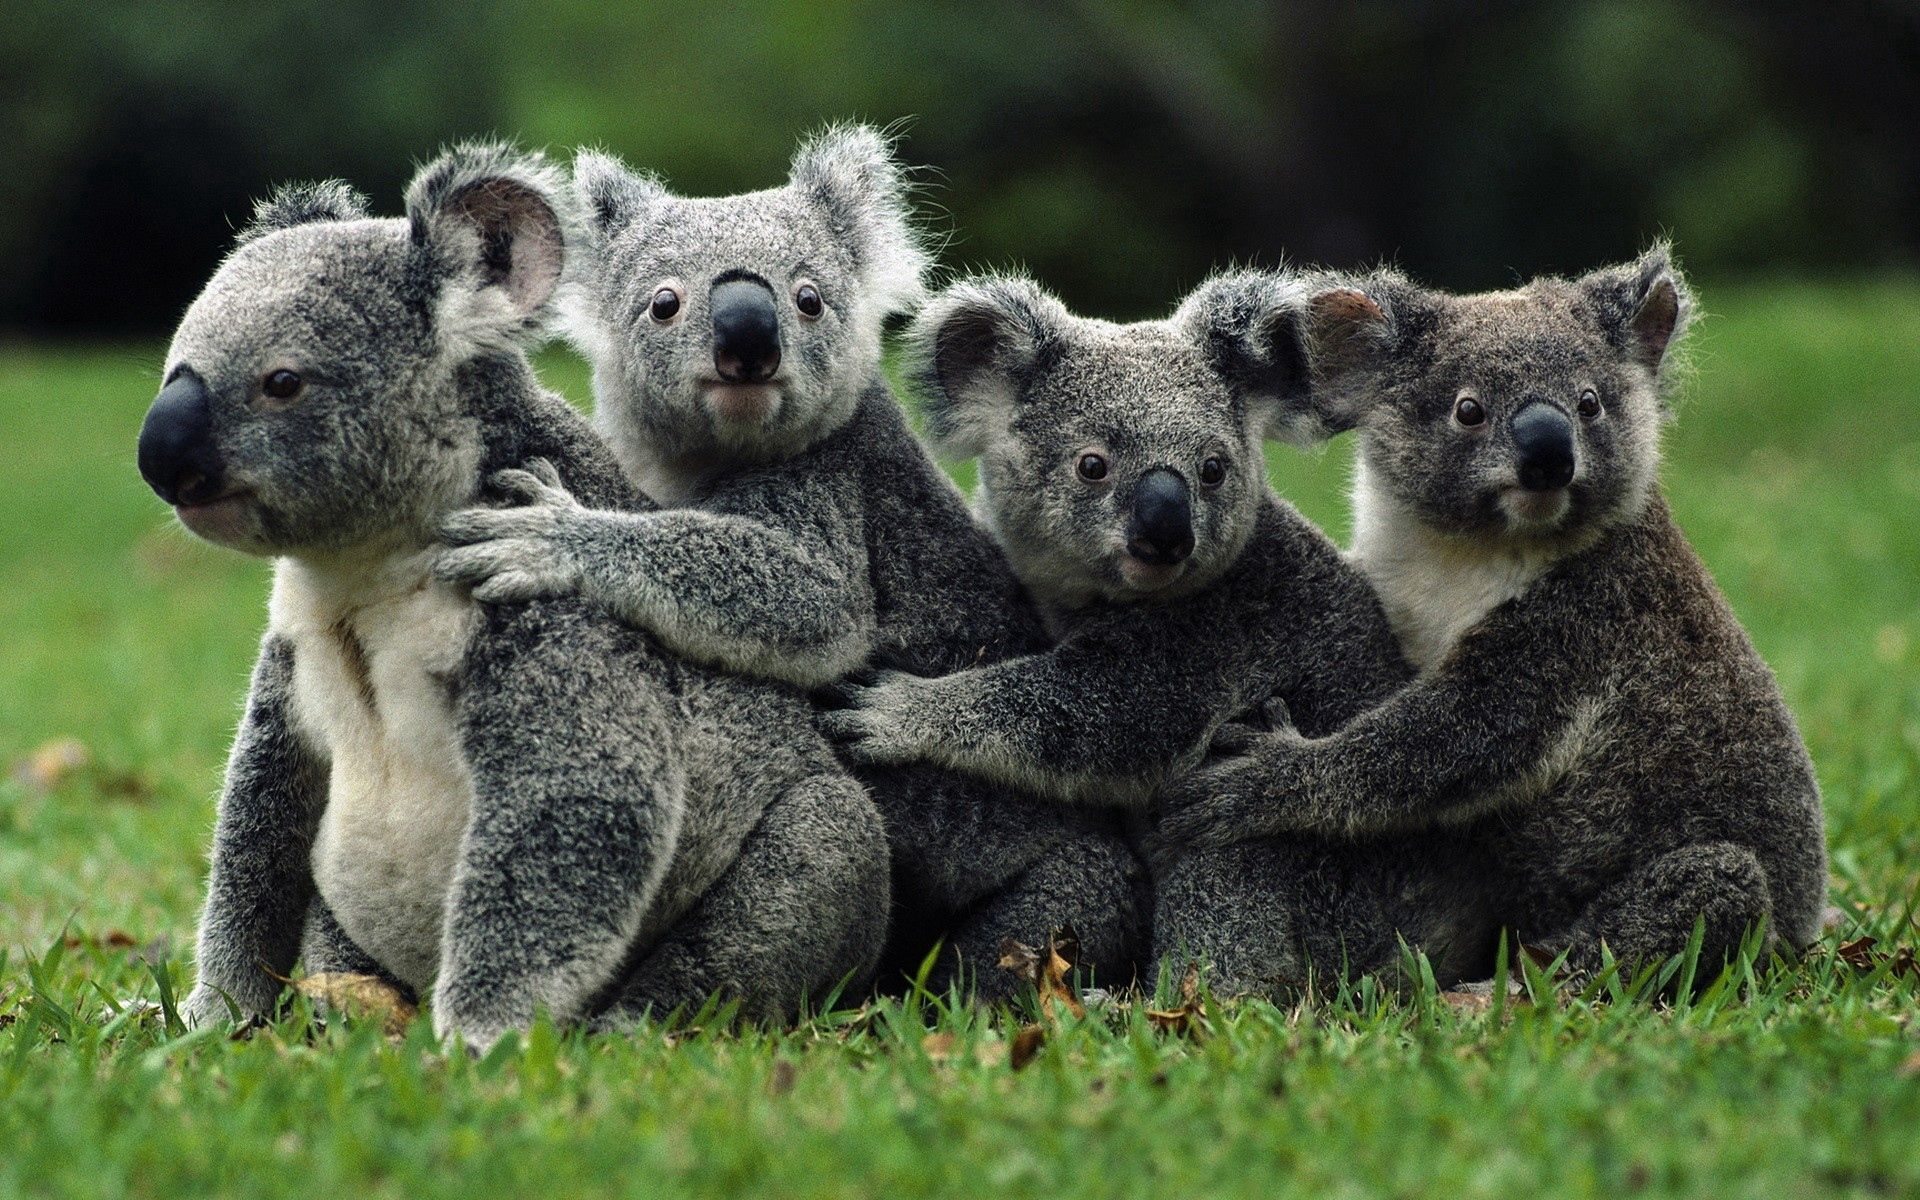 116418 download wallpaper Animals, Koalas, Crowd, Wild screensavers and pictures for free